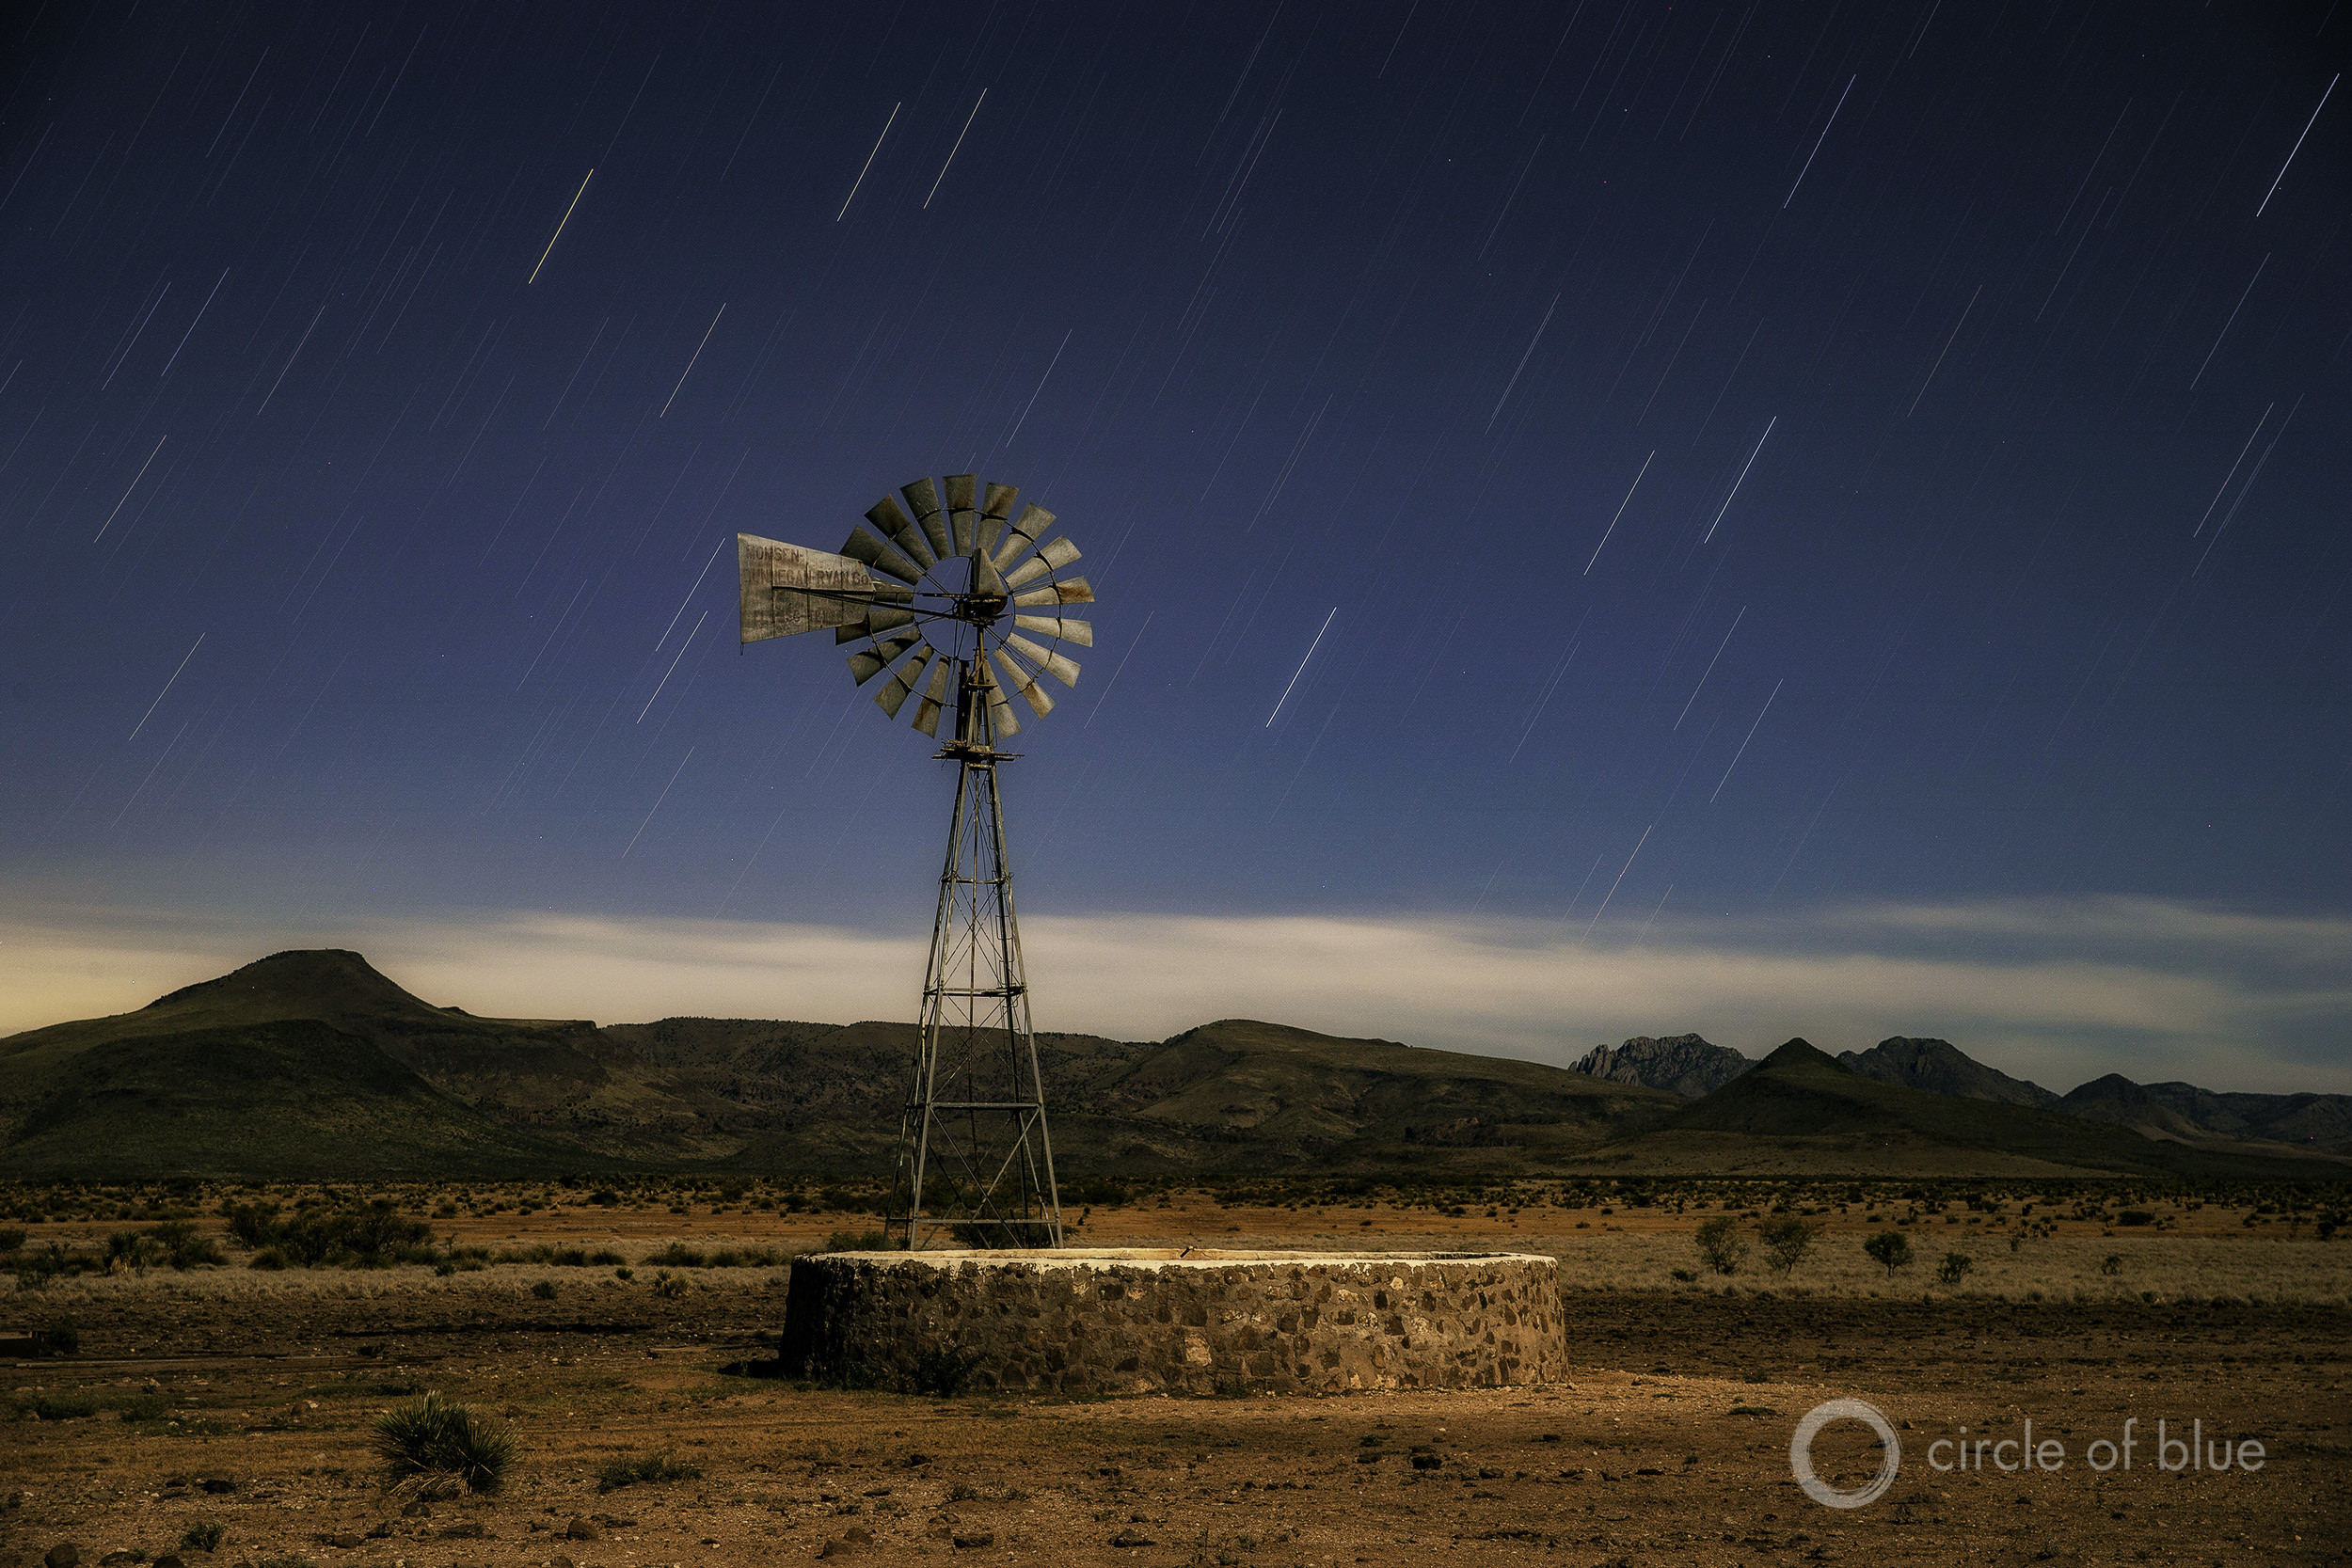 A windmill on the land of Bodie Means, 68, near Valentine, Texas. The Davis Mountain Range is in the background.